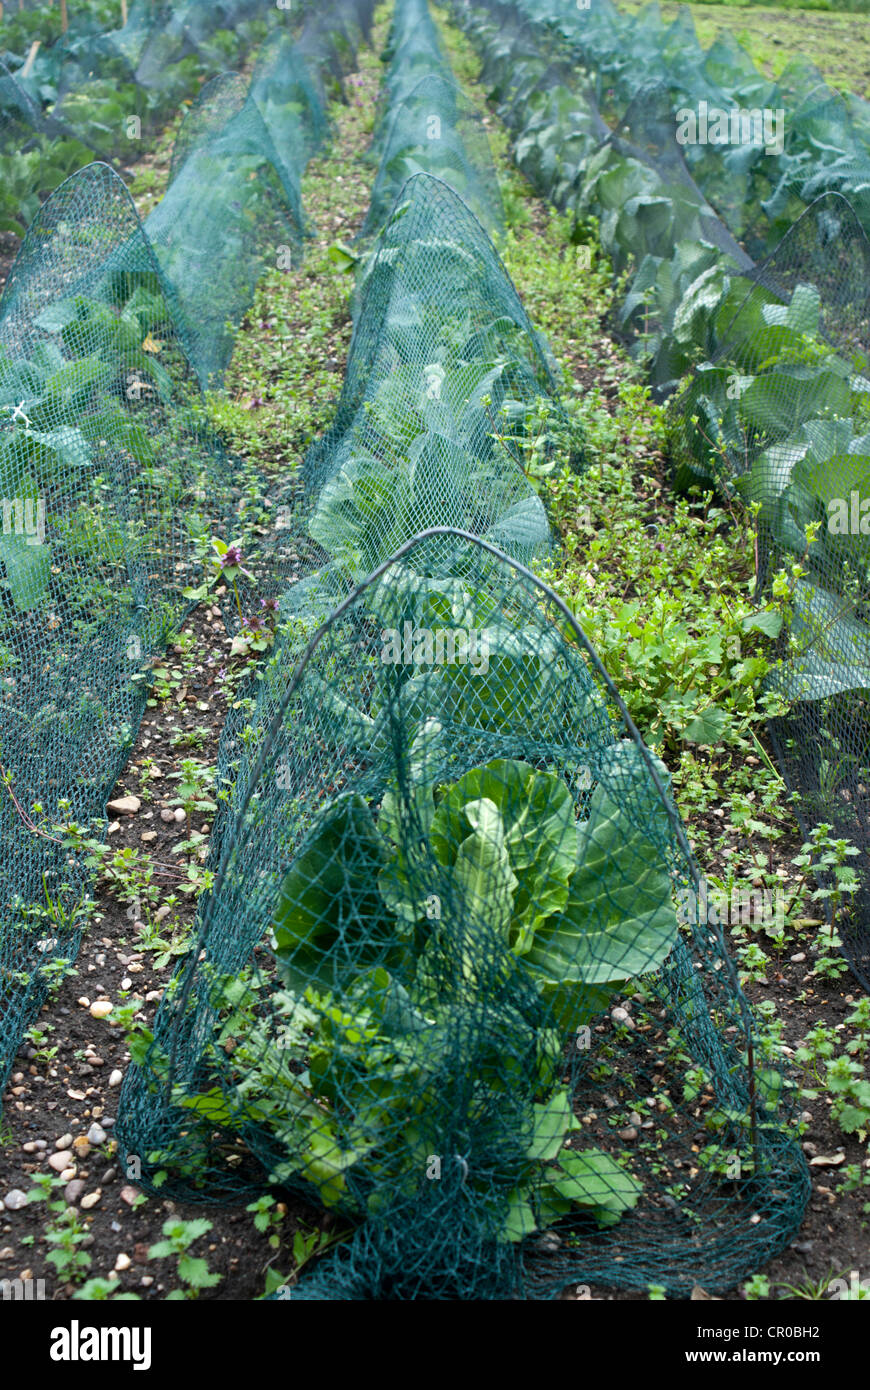 Wire hoops and netting being used as crop protection Stock Photo